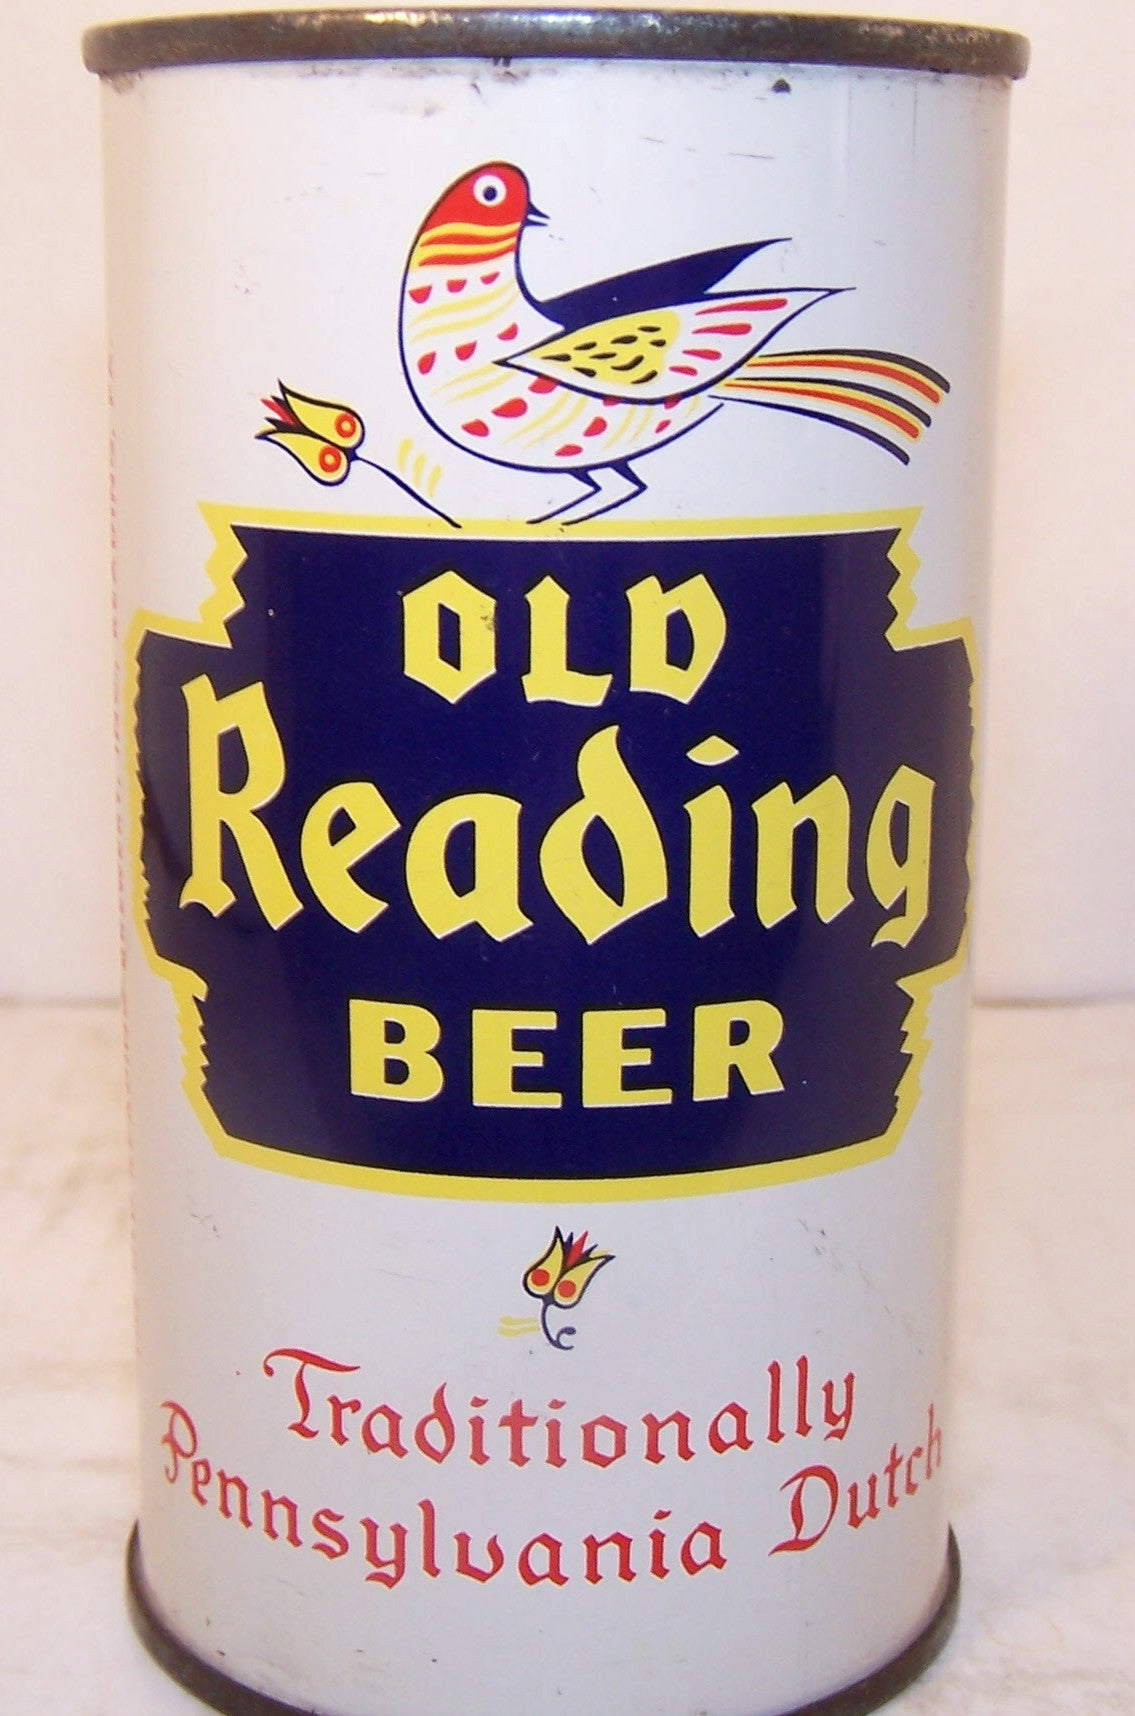 Old Reading Beer, USBC 108-3, Grade 1 to 1/1+ Sold 1/15/15